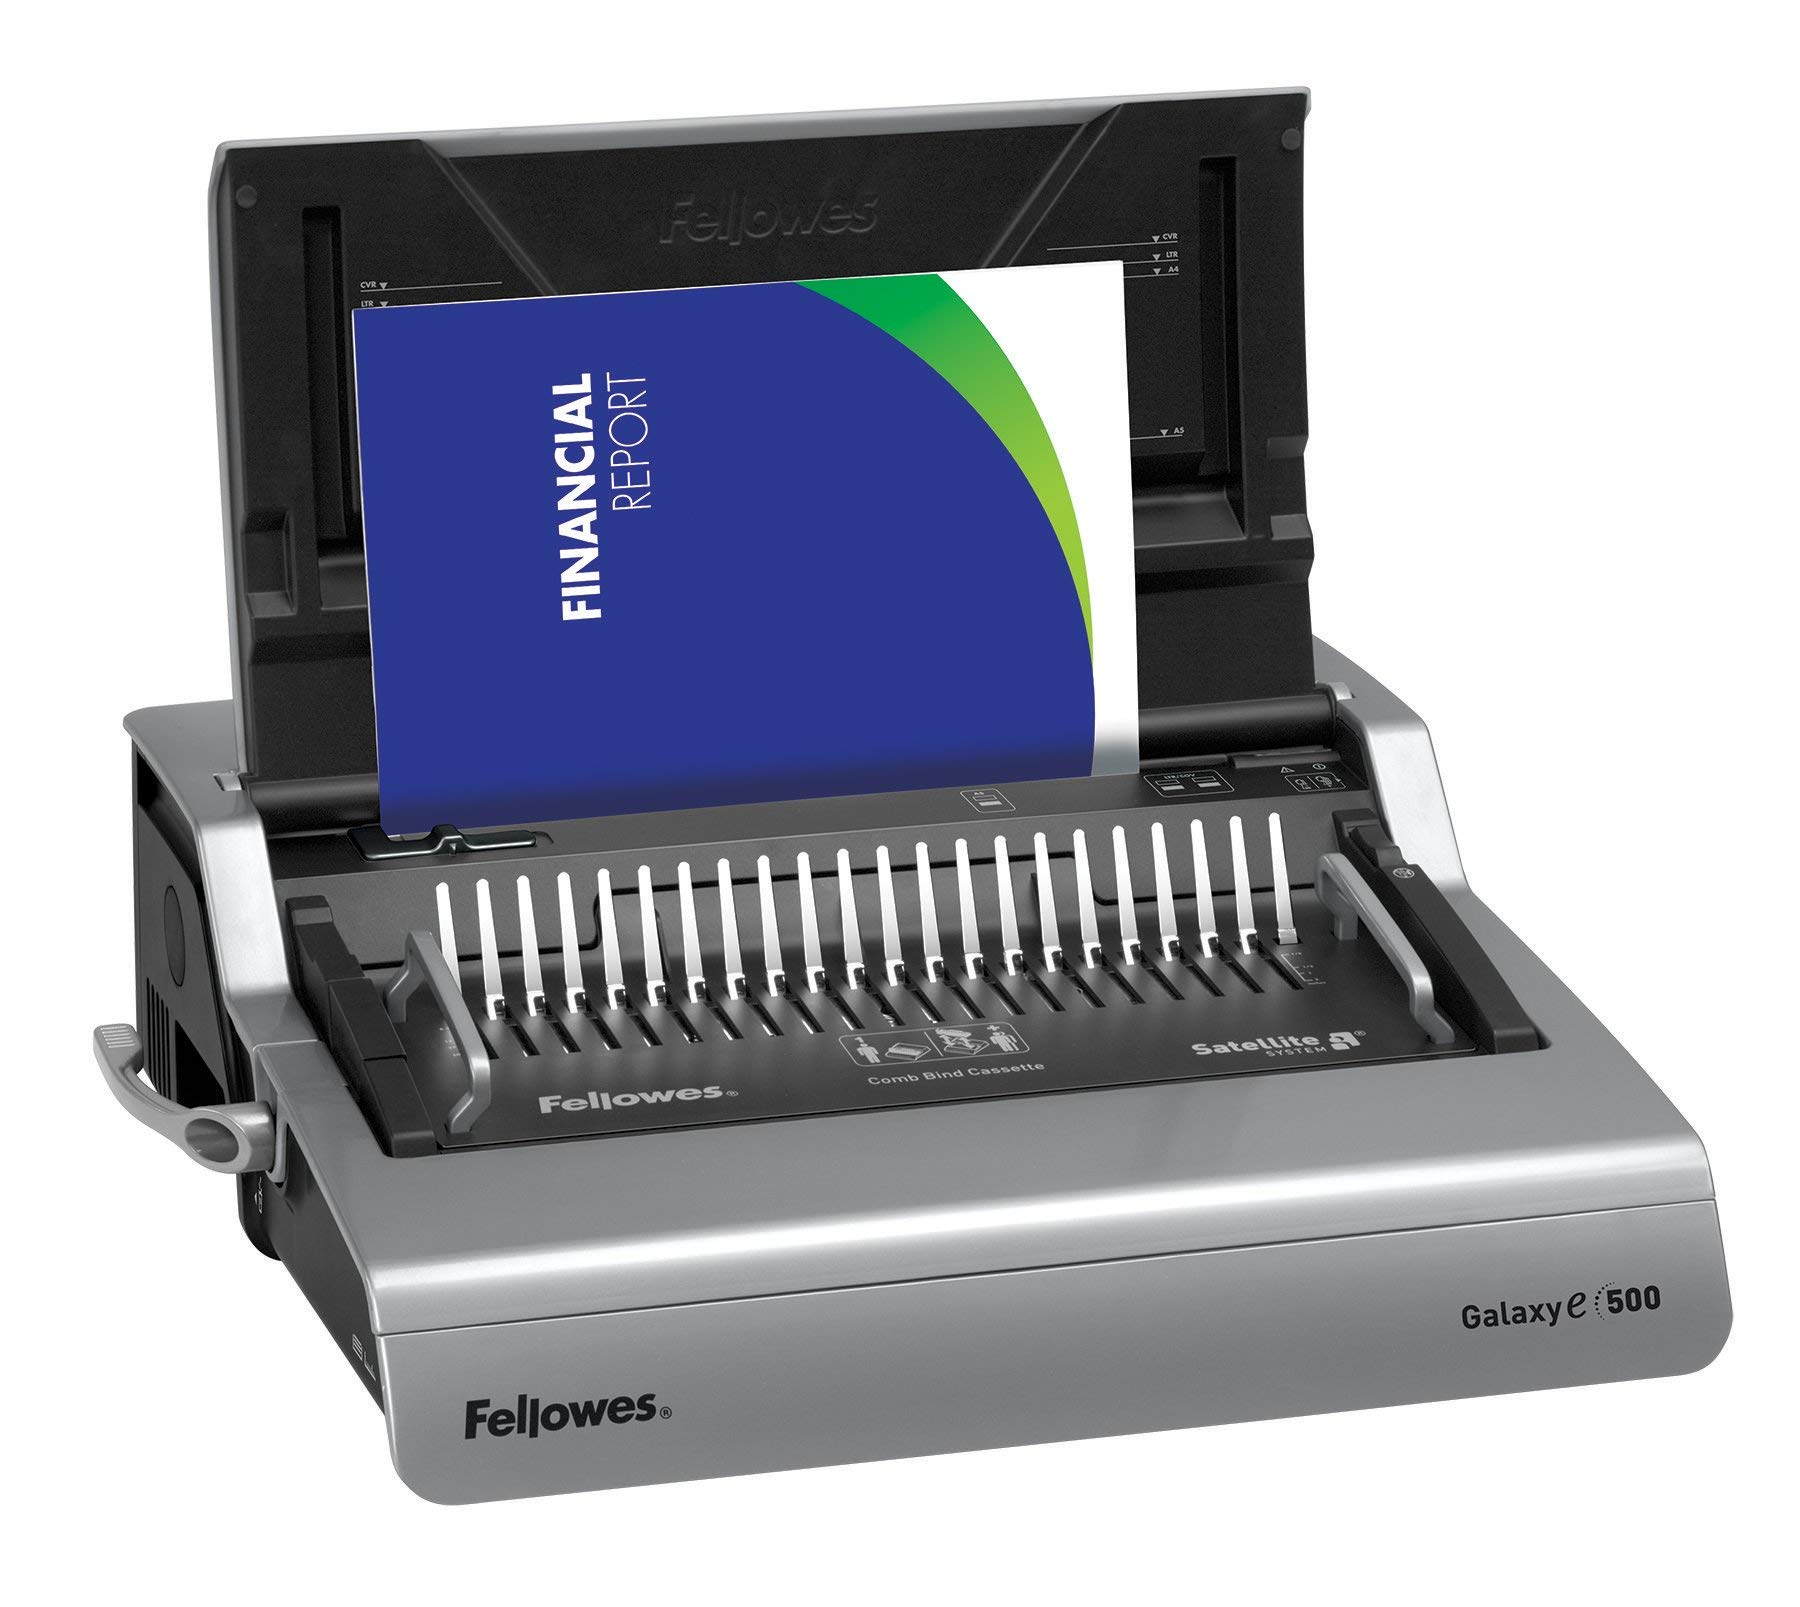 Fellowes 5218301 Galaxy 500 Electric Comb Binding System, 500 Sheets, 19 5/8x17 3/4x6 1/2, Gray (Renewed) by Fellowes (Image #2)